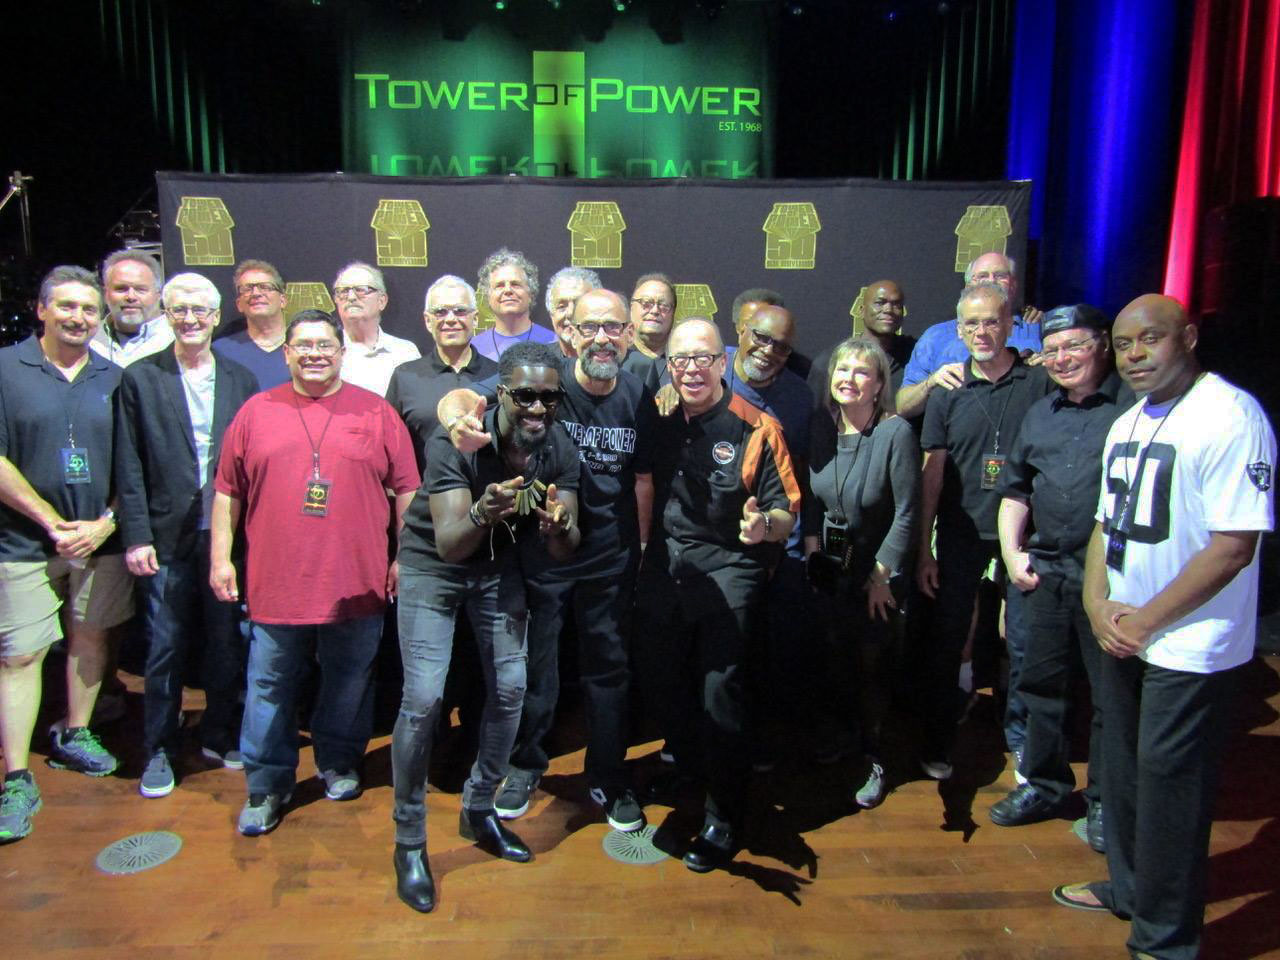 Bob Burchfield with Tower of Power on June 2, 2018 in Oakland, California.